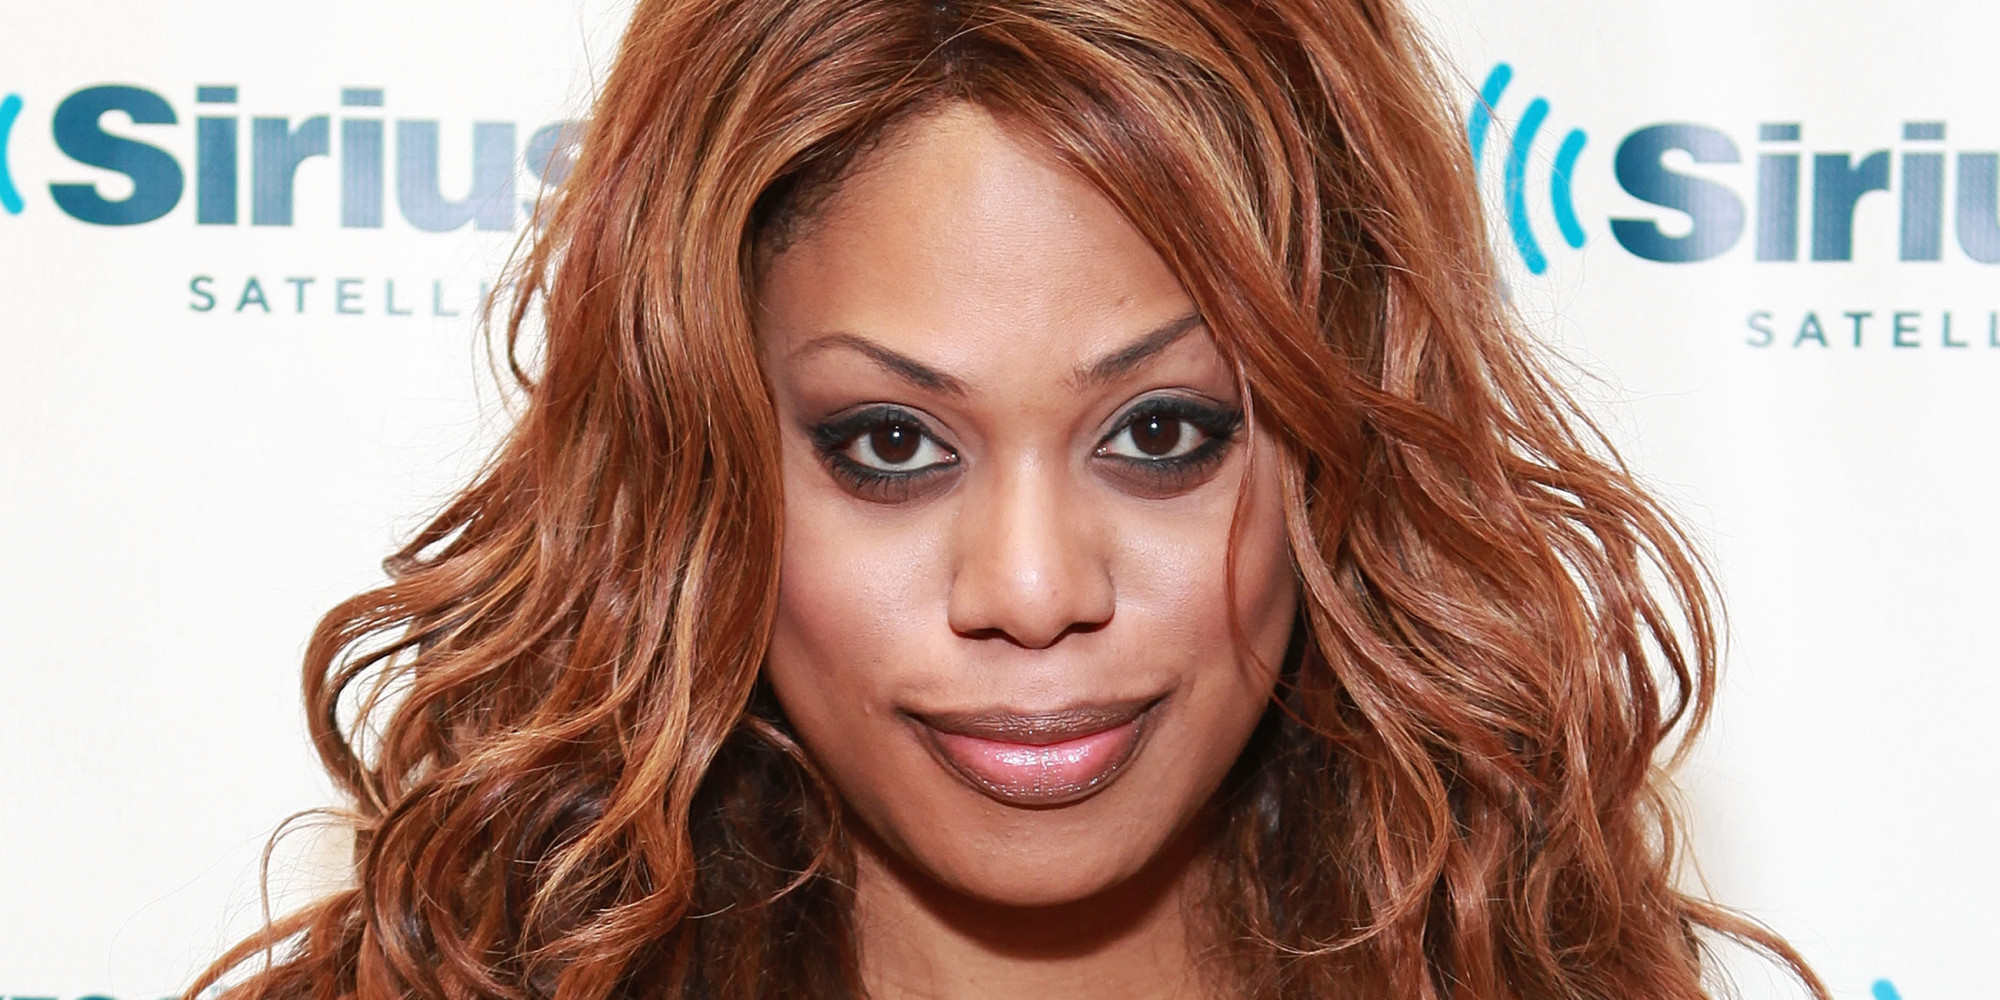 laverne cox brotherlaverne cox brother, laverne cox рост, laverne cox orange is the new black, laverne cox rocky horror, laverne cox wiki, laverne cox grammy, laverne cox weight loss, laverne cox horror, laverne cox imdb, laverne cox emmy, laverne cox hawtcelebs, laverne cox time magazine, laverne cox vs. samira wiley, laverne cox interview, laverne cox insta, laverne cox james corden, laverne cox metallica, laverne cox twitter, laverne cox instagram, laverne cox net worth